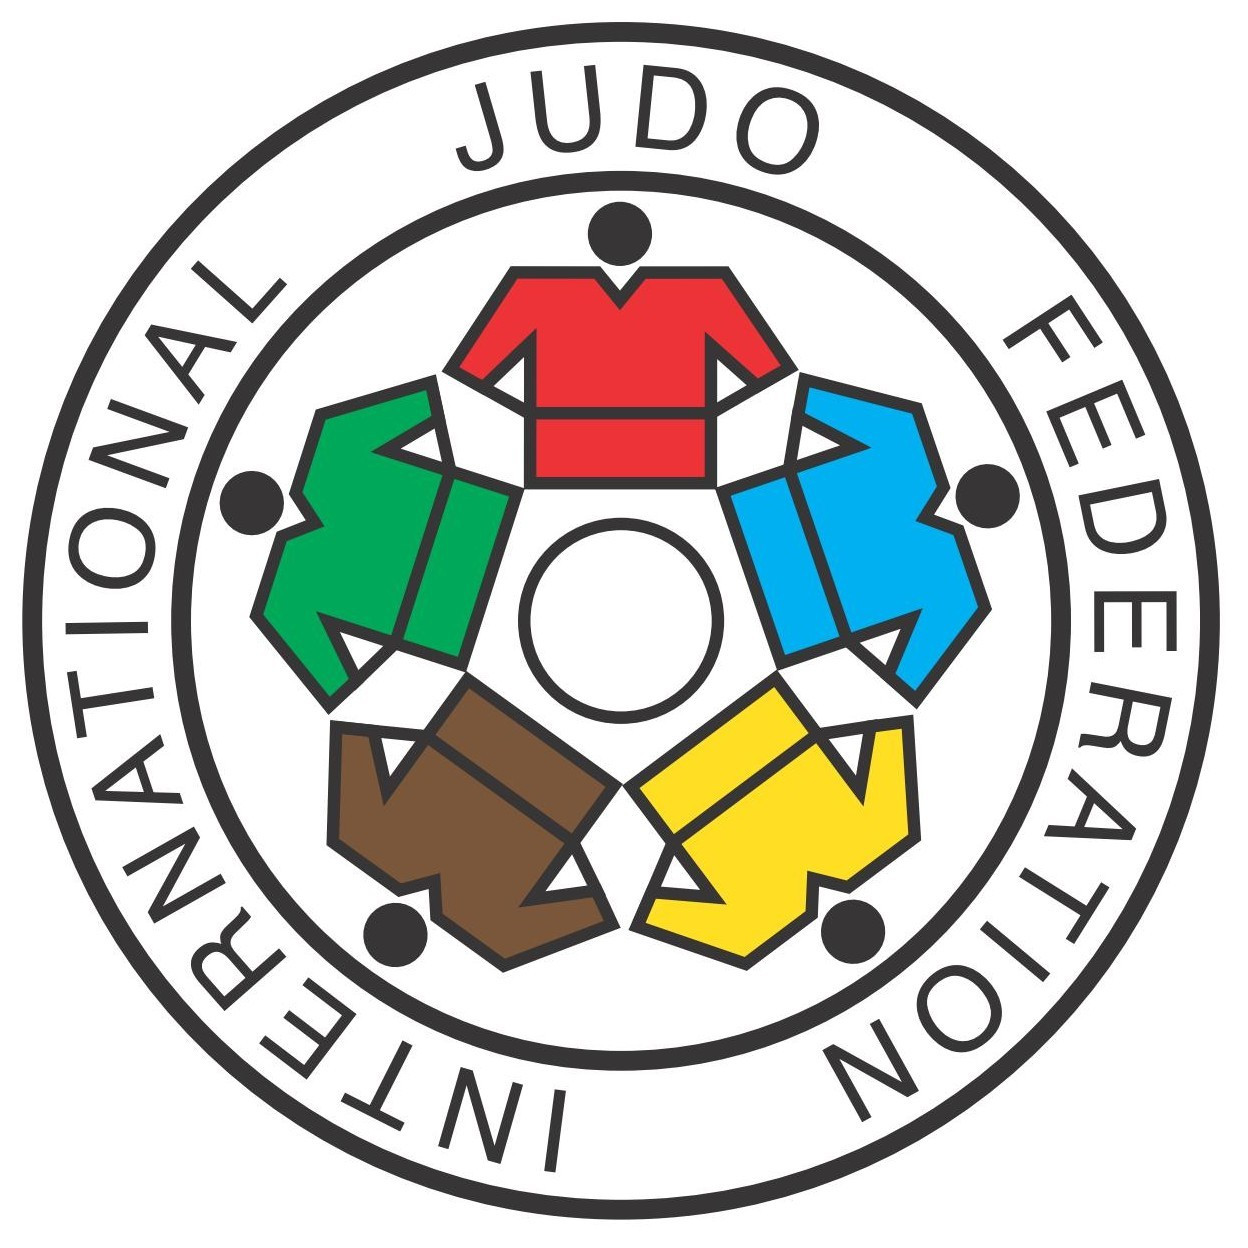 IJF teaching judo values to children through Great 8 competition